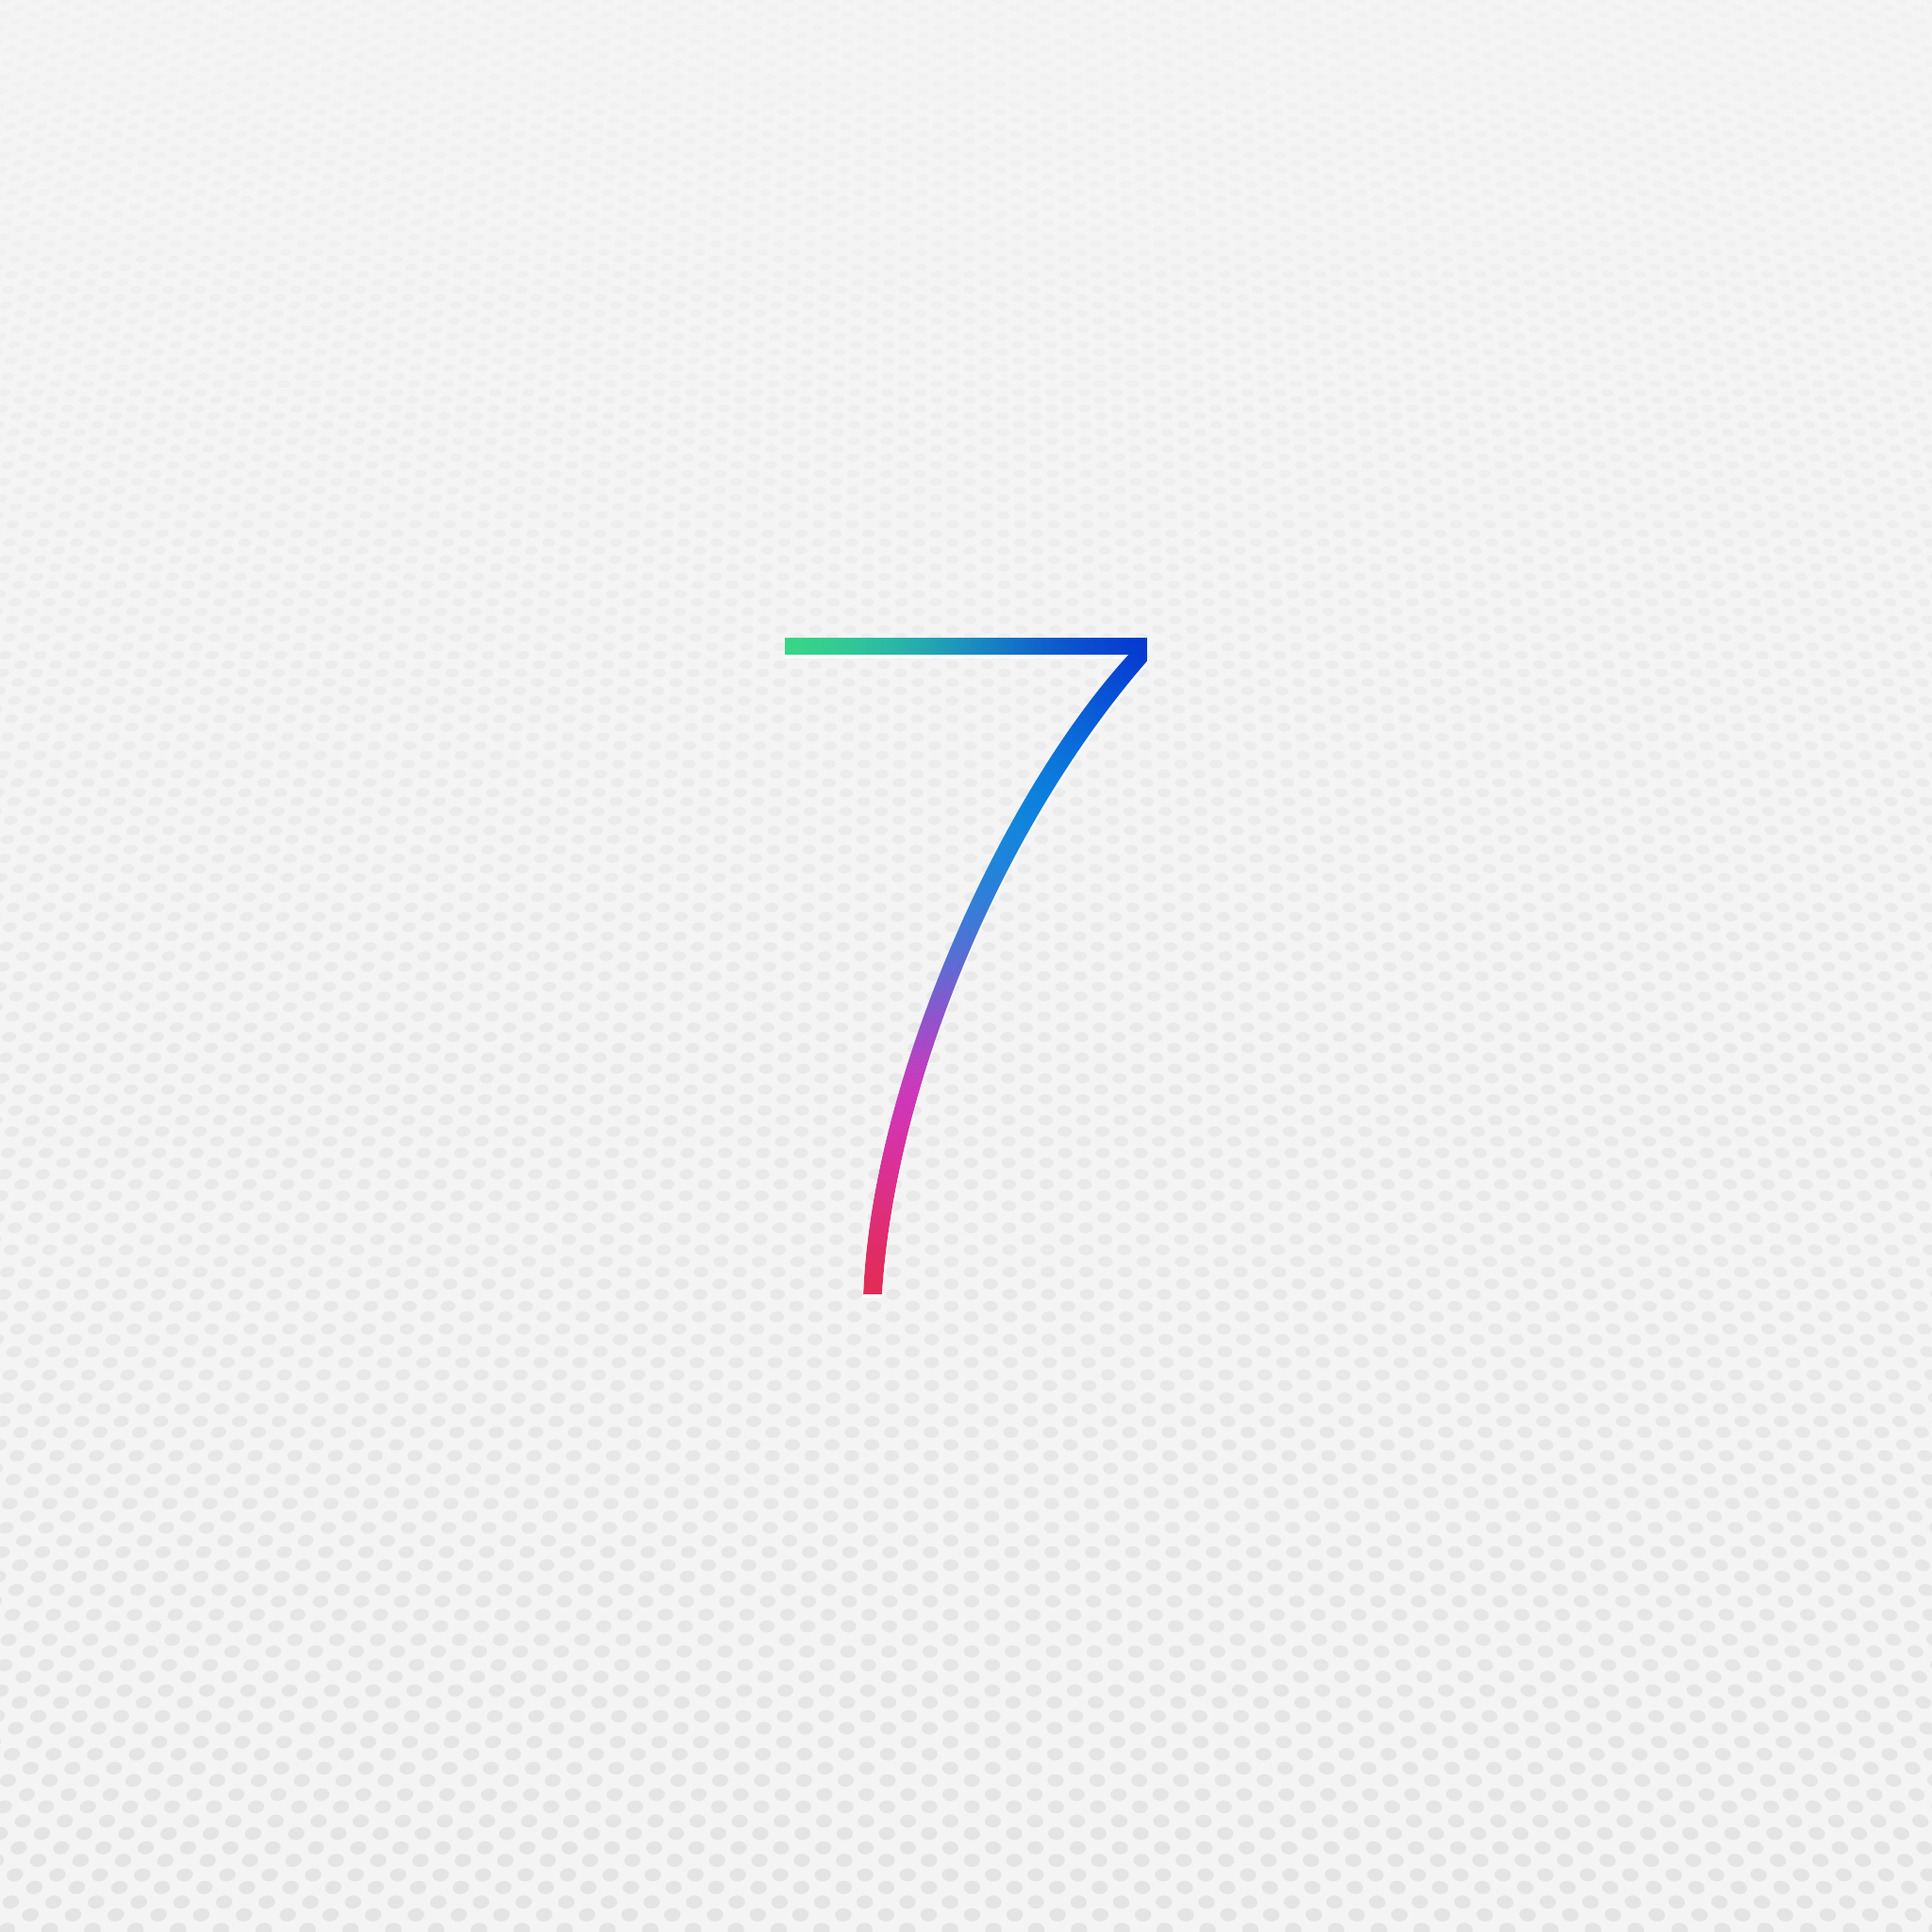 Ios 7 review significant changes improve iphone norse code ios 7 review significant changes improve iphone altavistaventures Choice Image